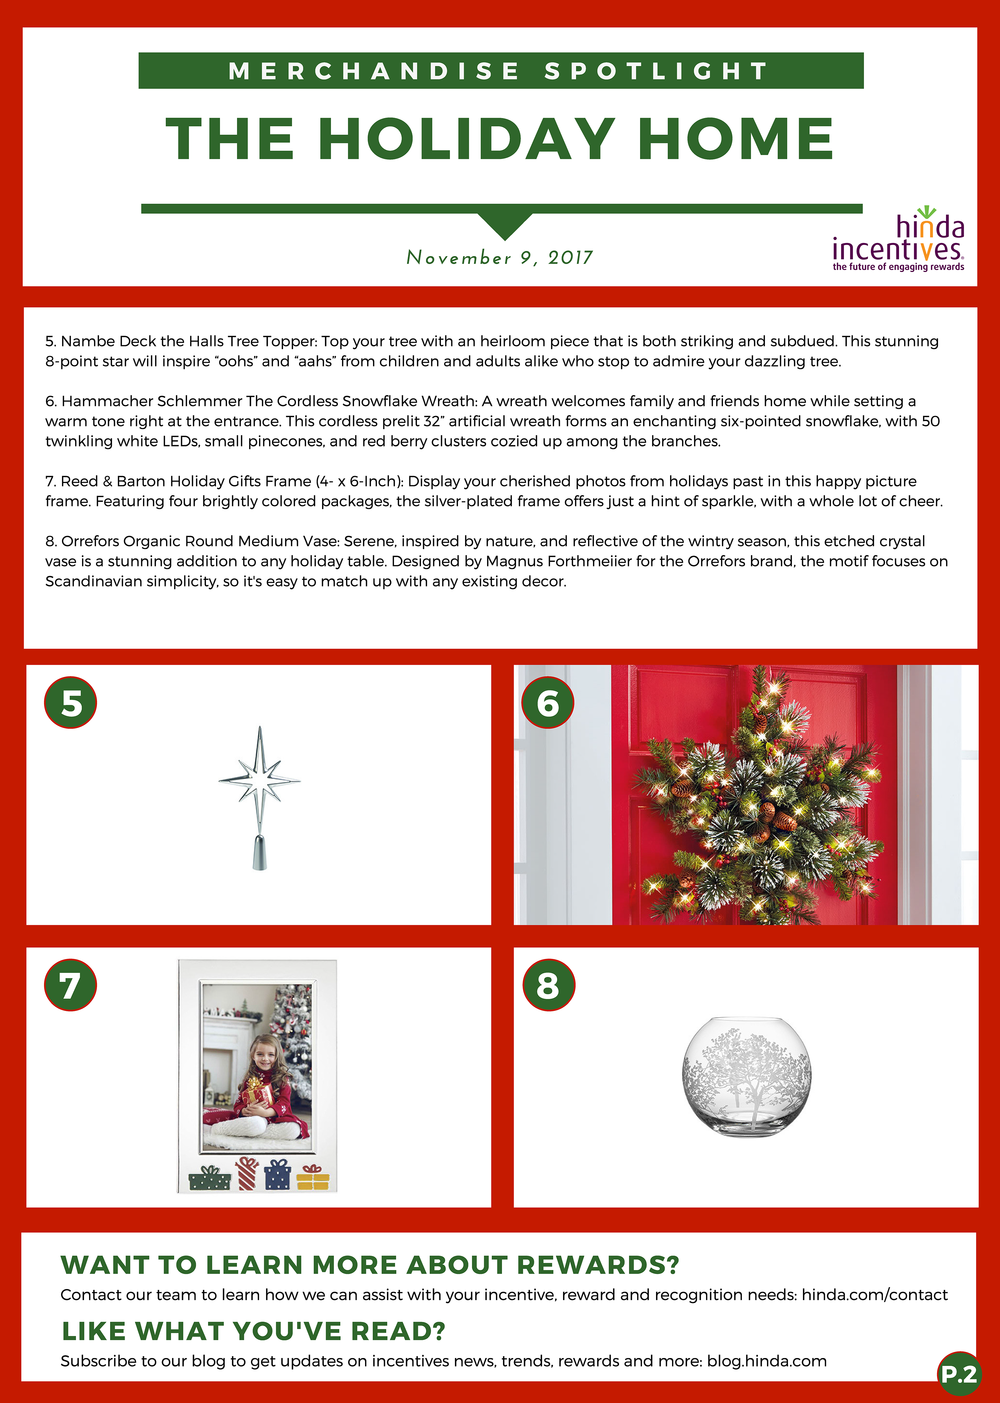 Merchandise Spotlight The Holiday Home 11.9.17_Page_2-3000W.png